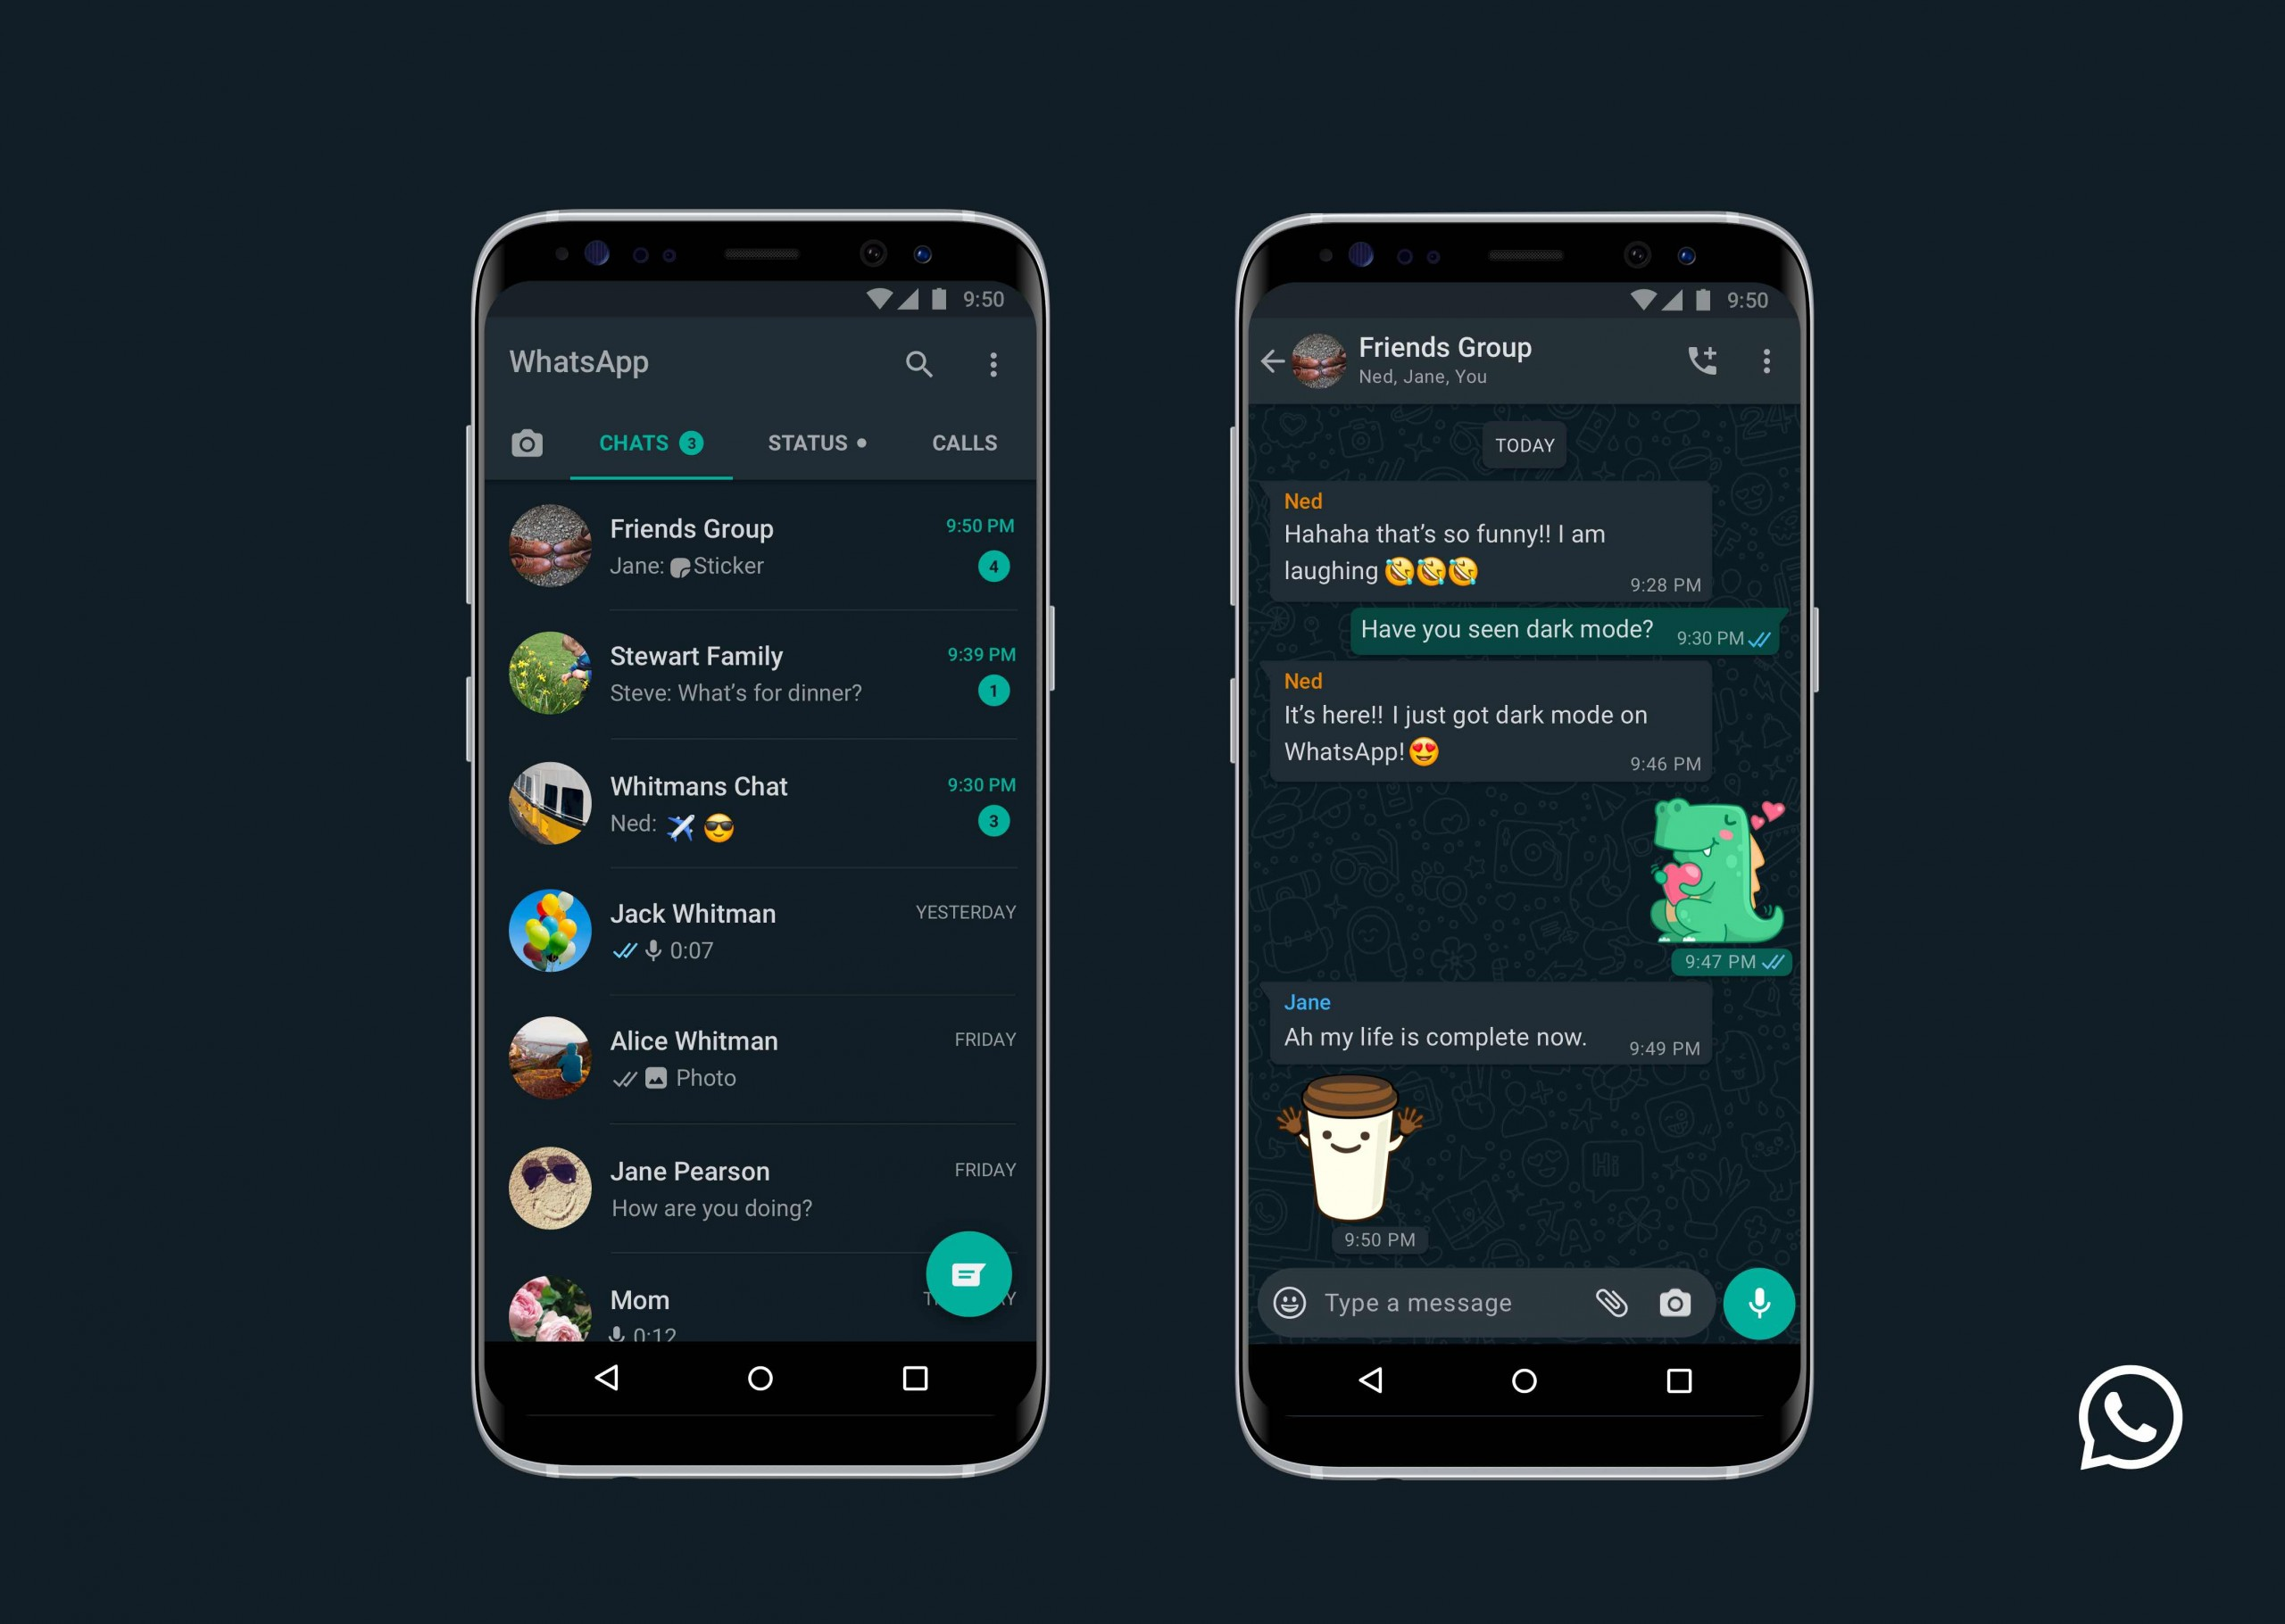 WhatsApp finally gets dark mode on Android and iOS